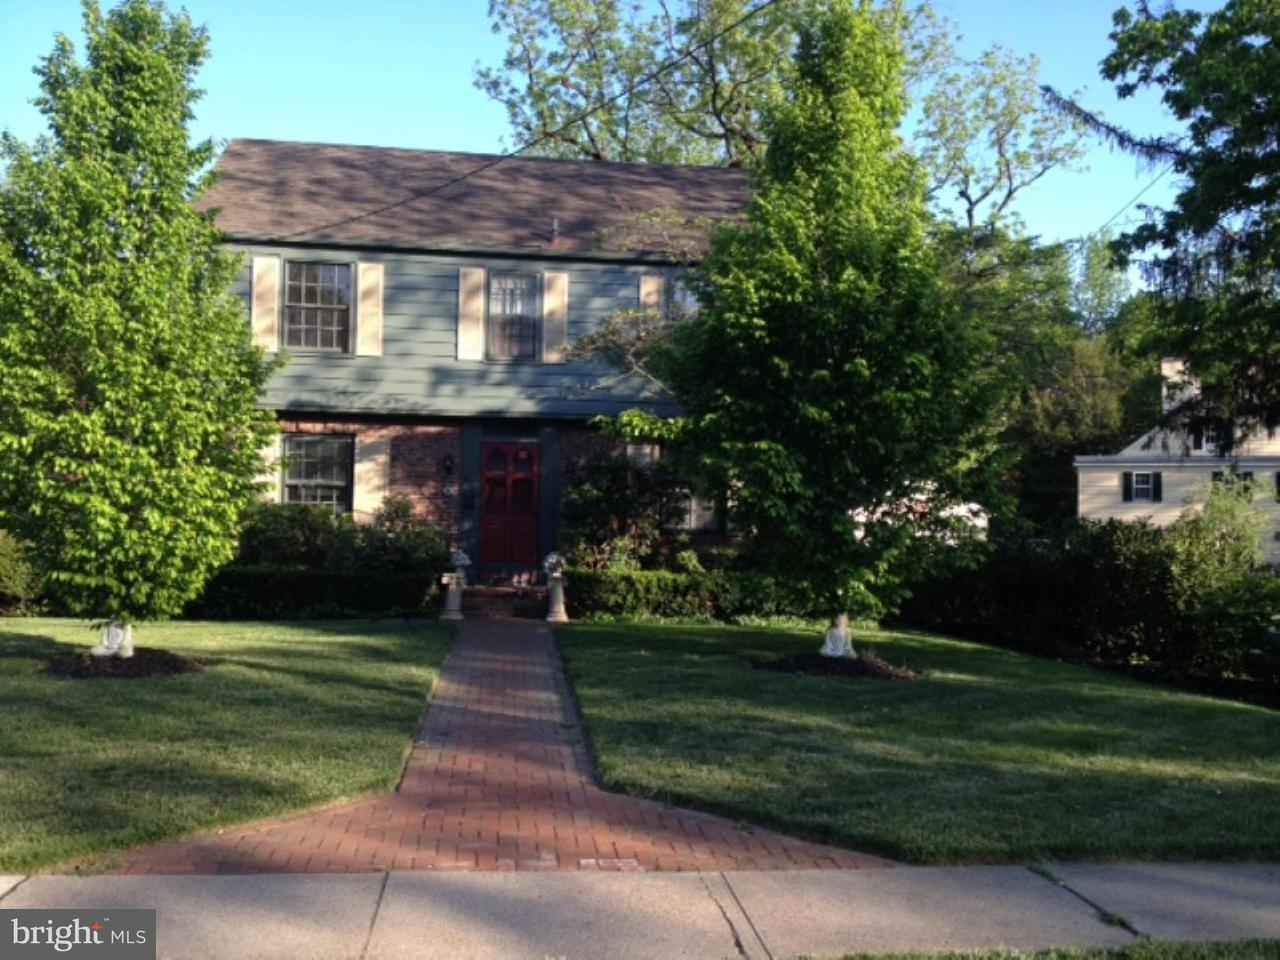 Single Family Home for Rent at 6 E CHESTNUT Street Bordentown, New Jersey 08505 United States